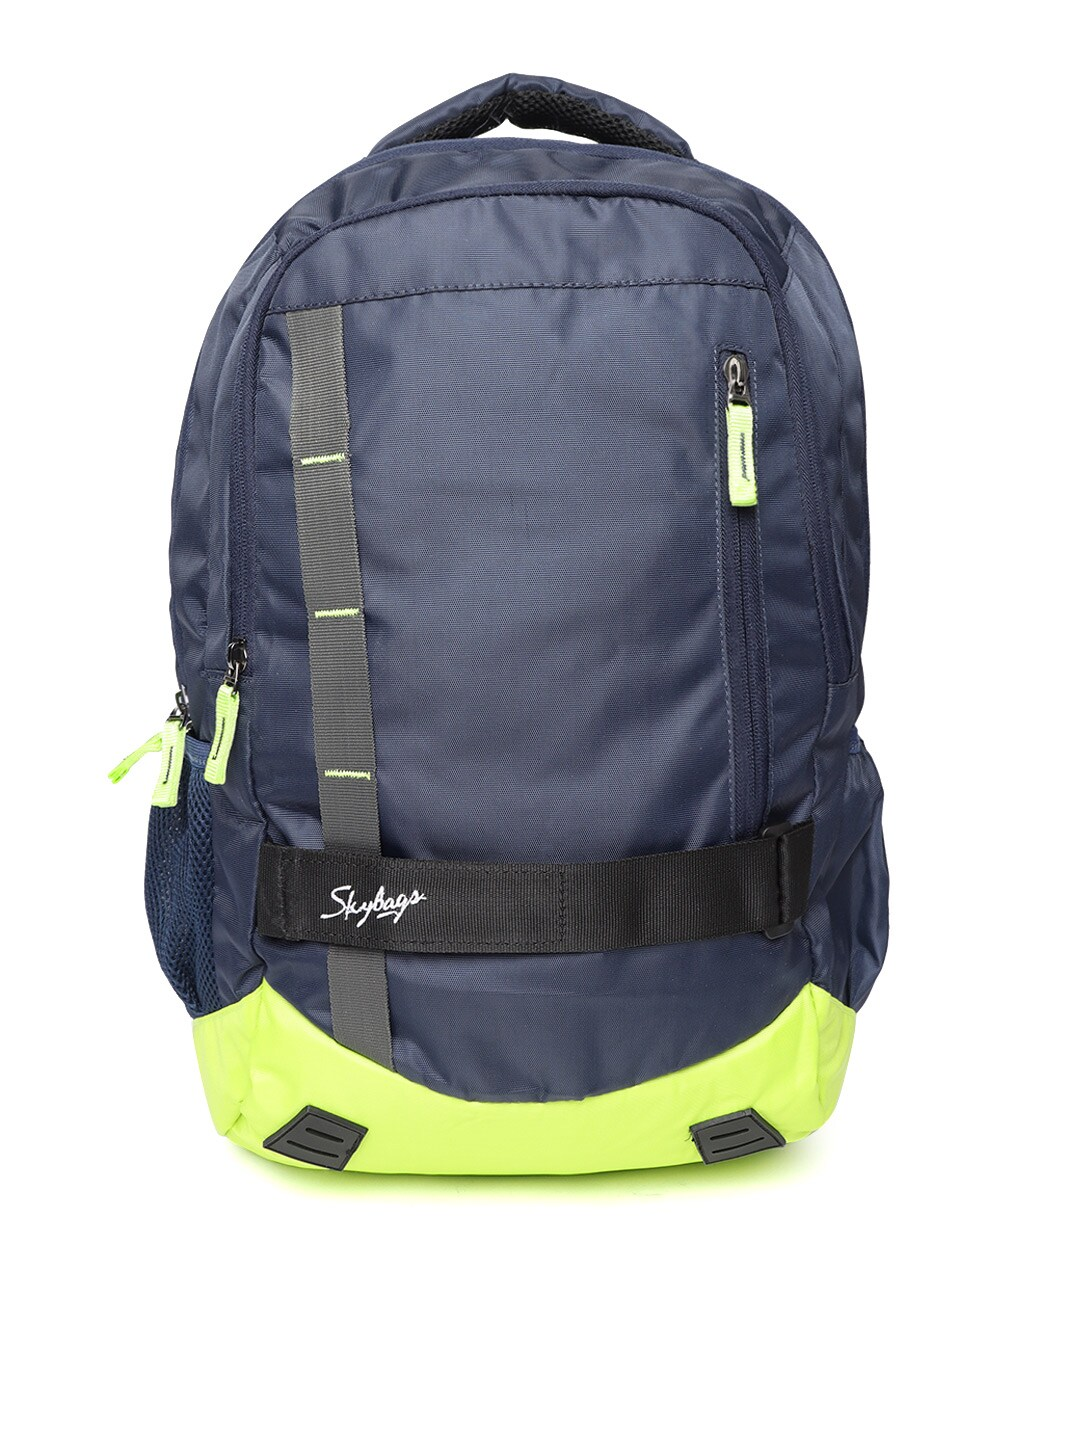 41106f351d4 Backpacks - Buy Backpack Online for Men